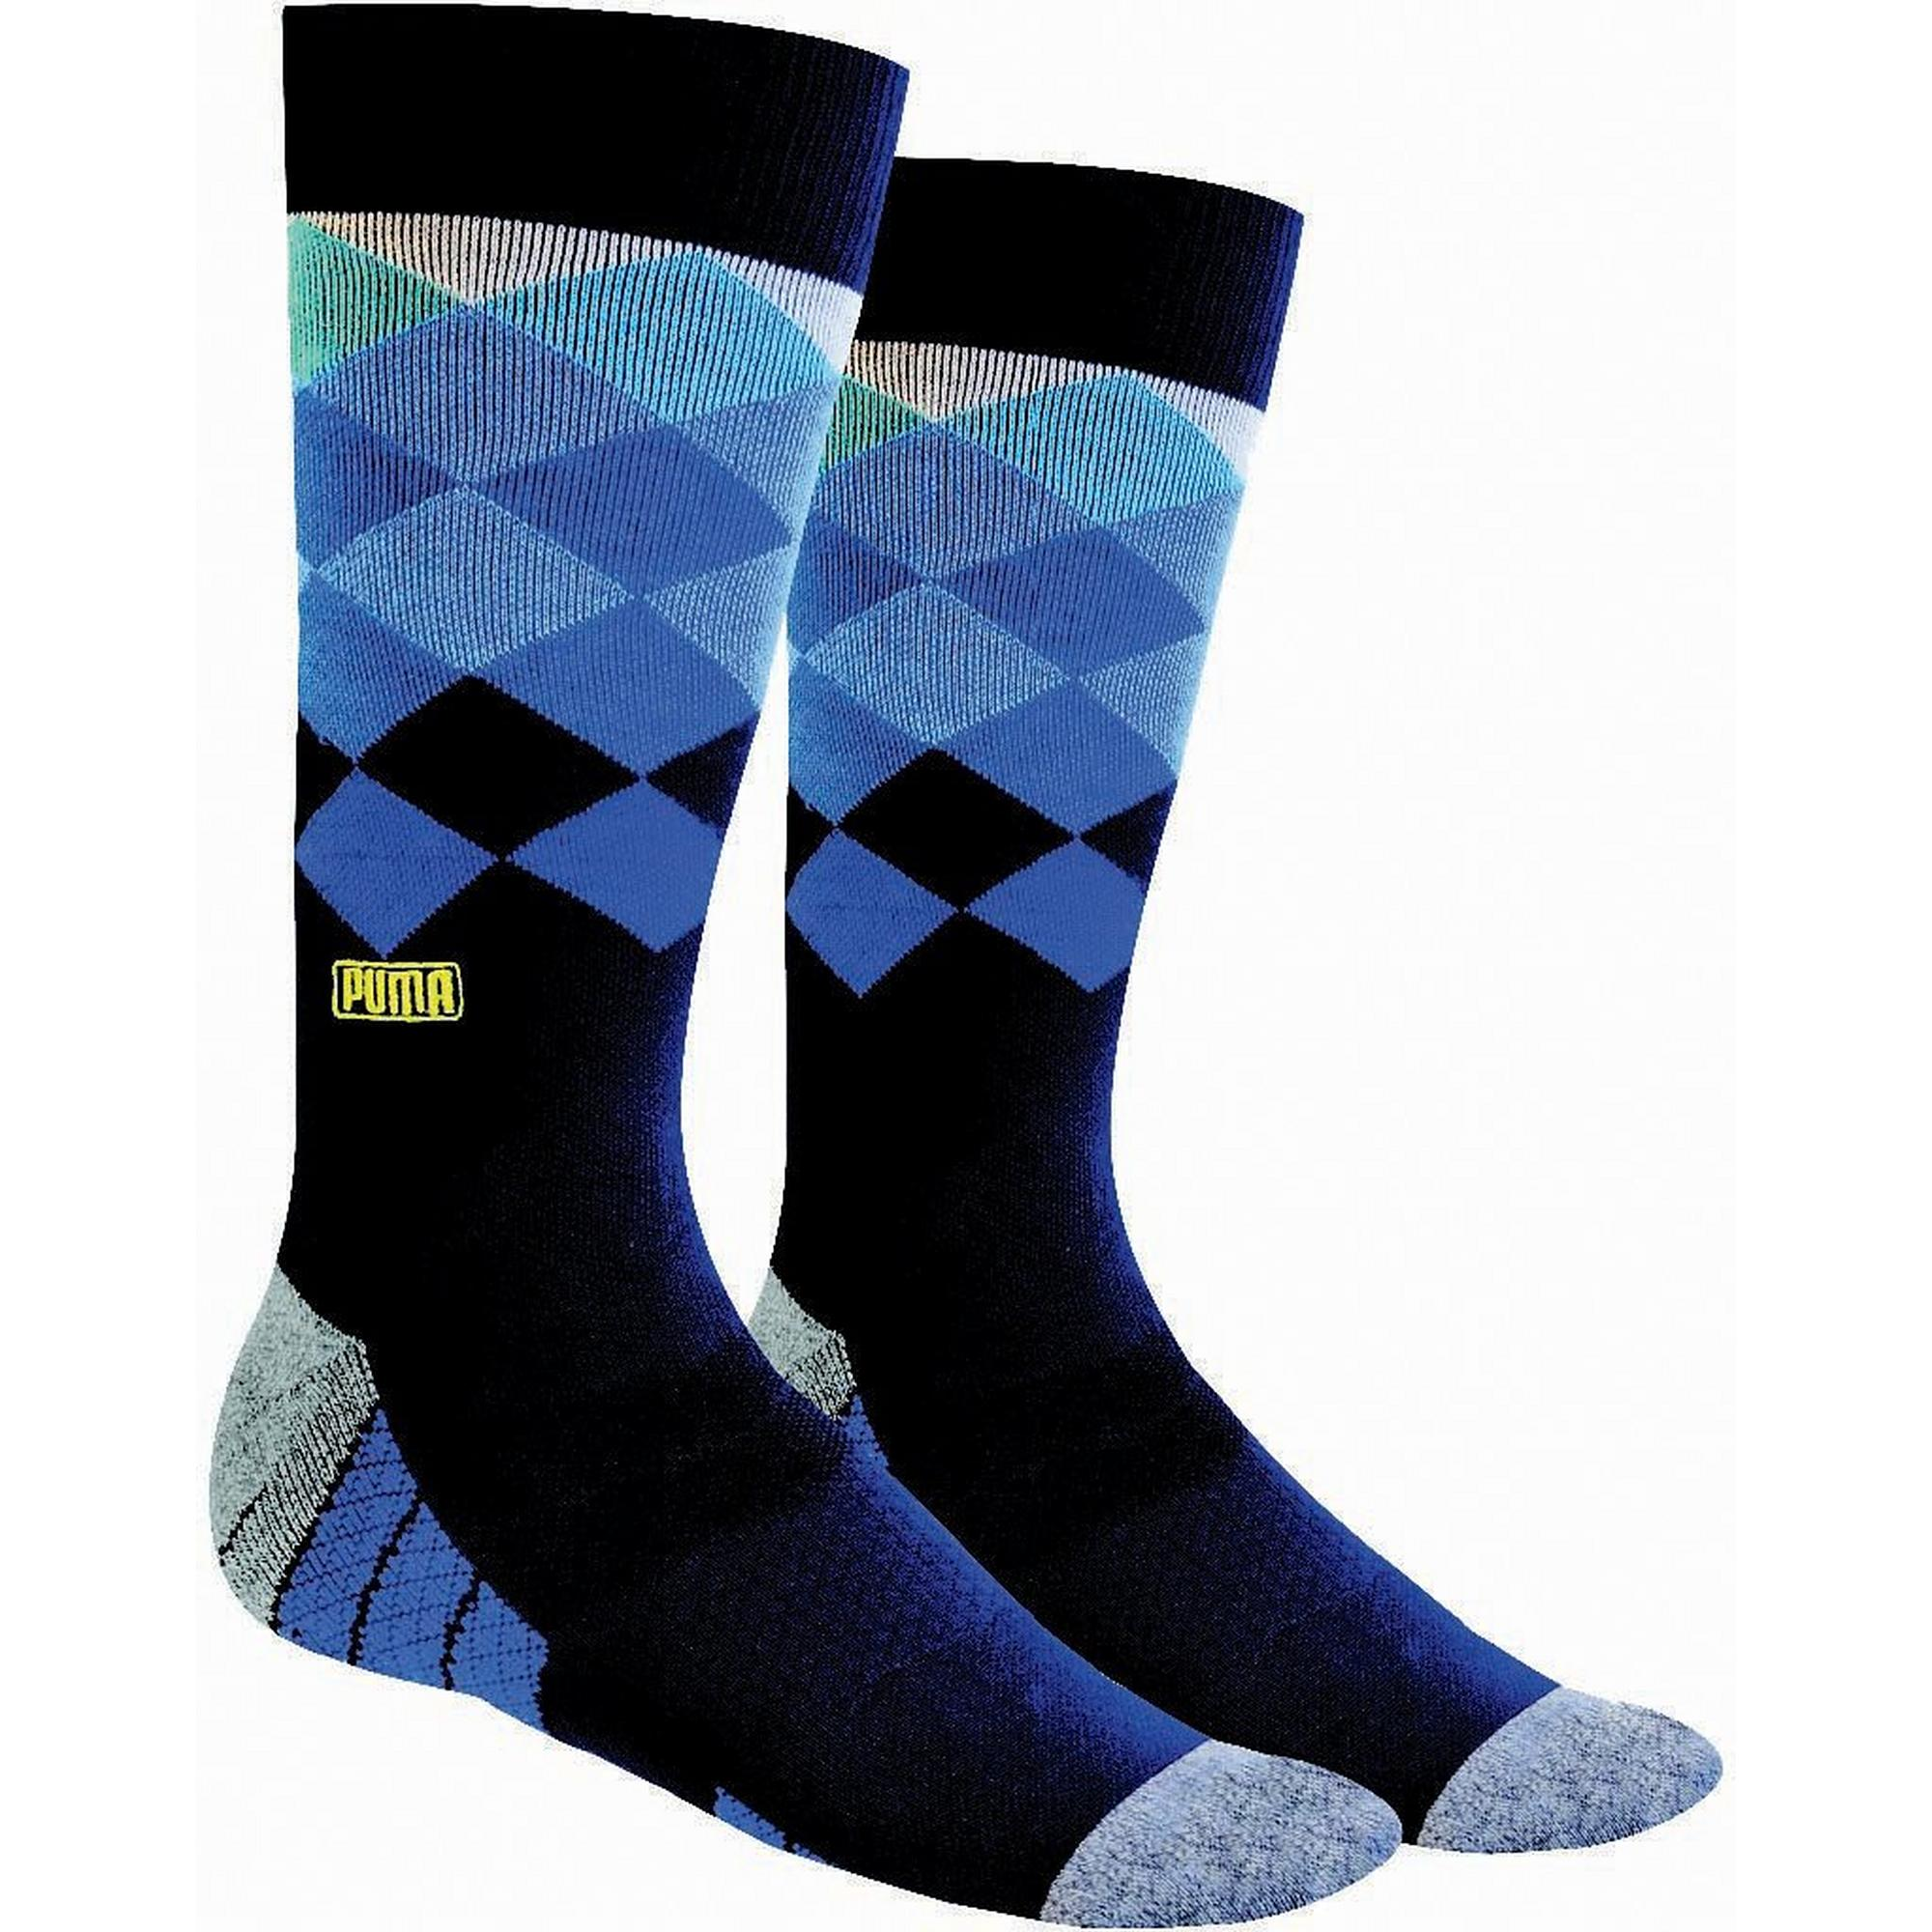 Men's Fusion Argyle Crew Socks